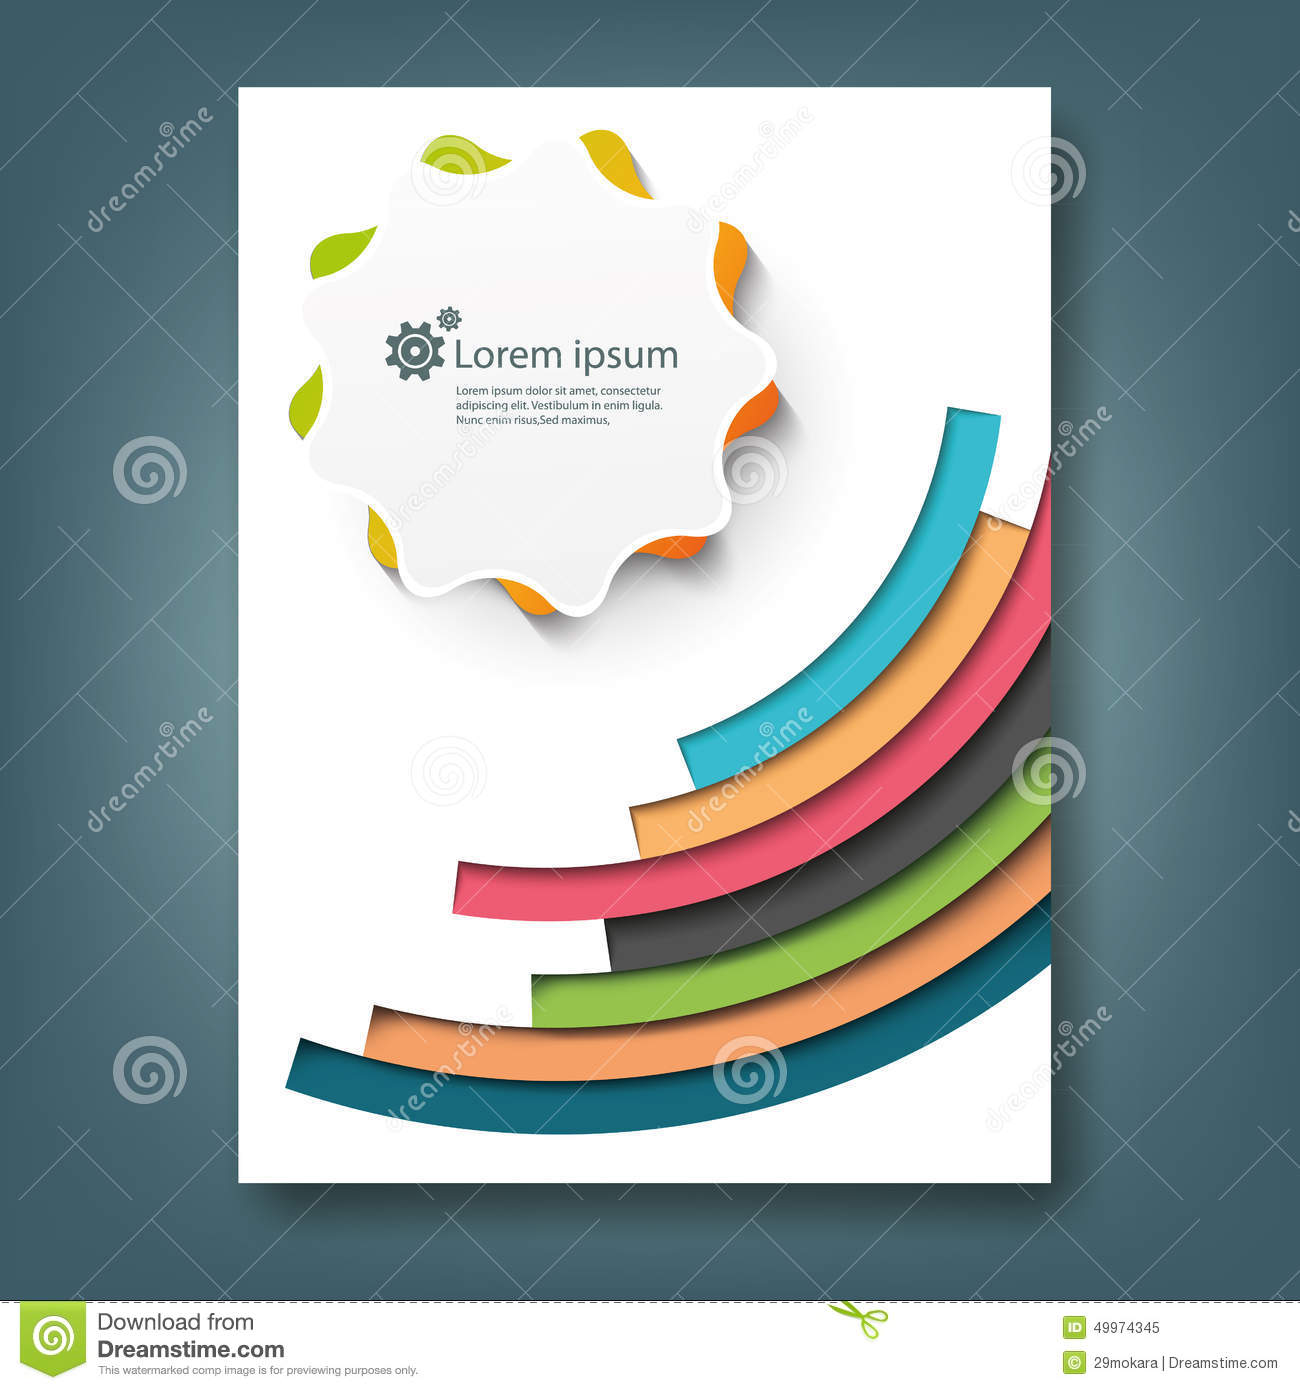 Report and cover book template stock illustration image for Book cover page design templates free download